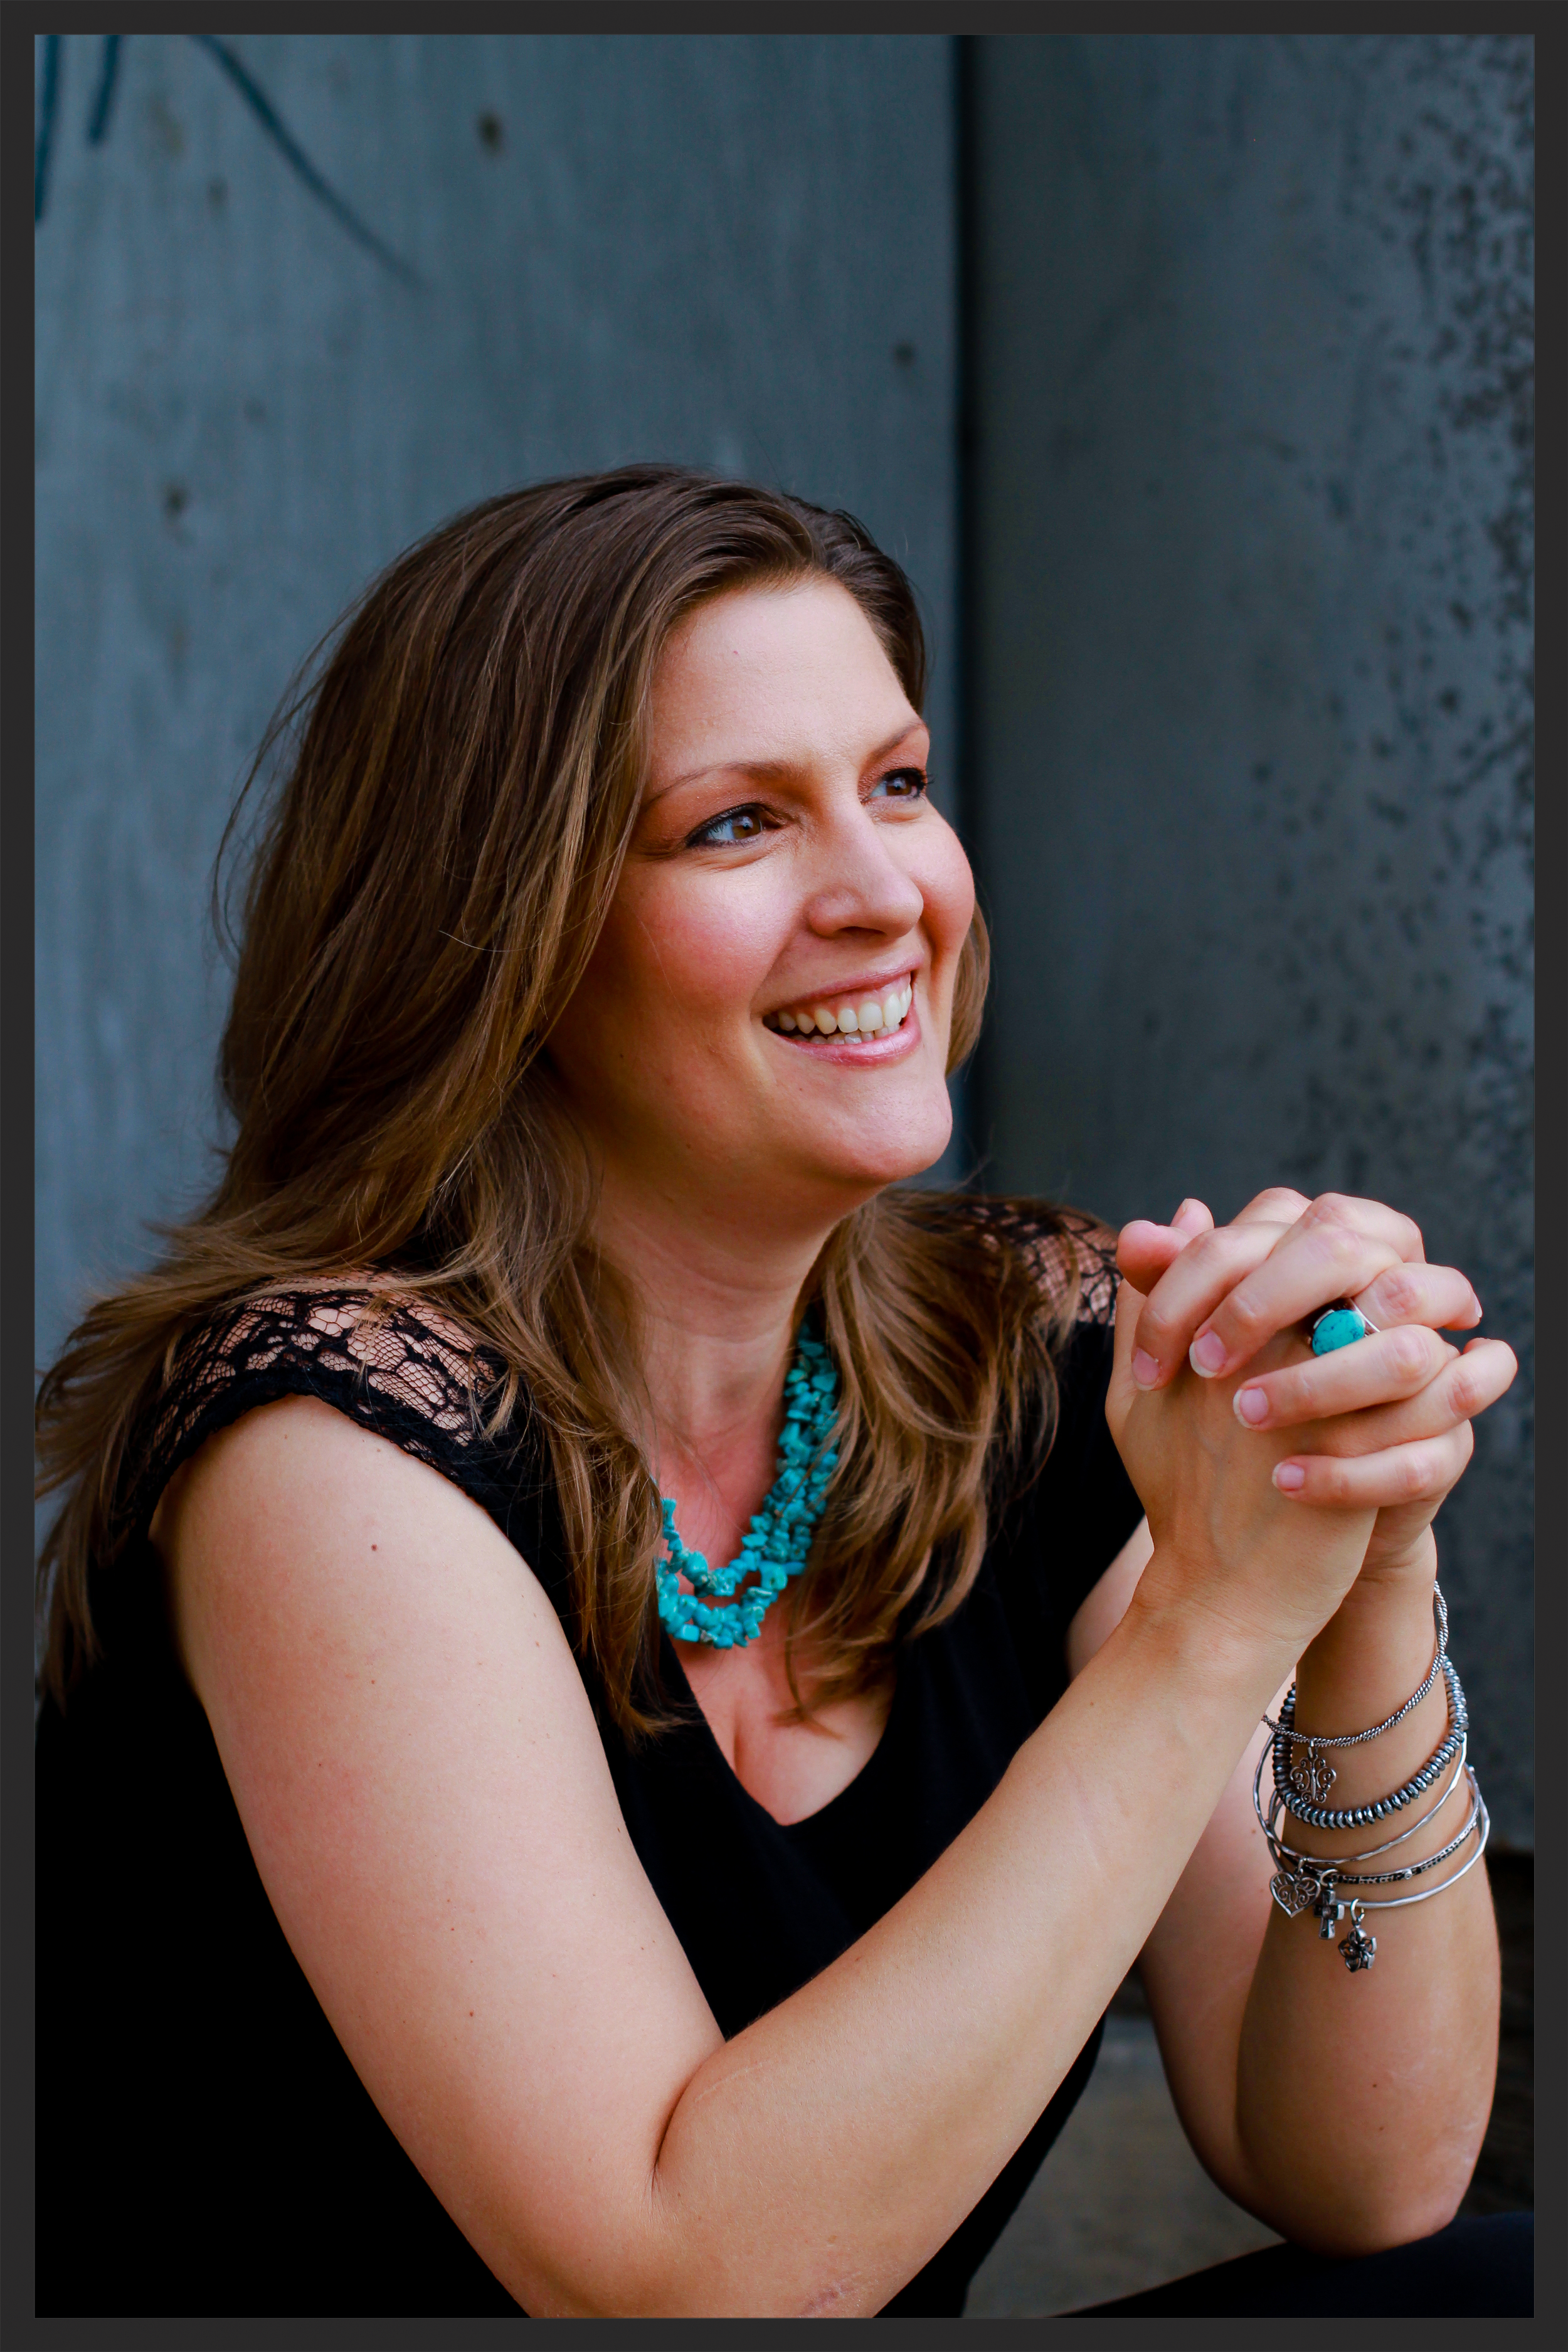 Contact and connect with Kara Stoltenberg